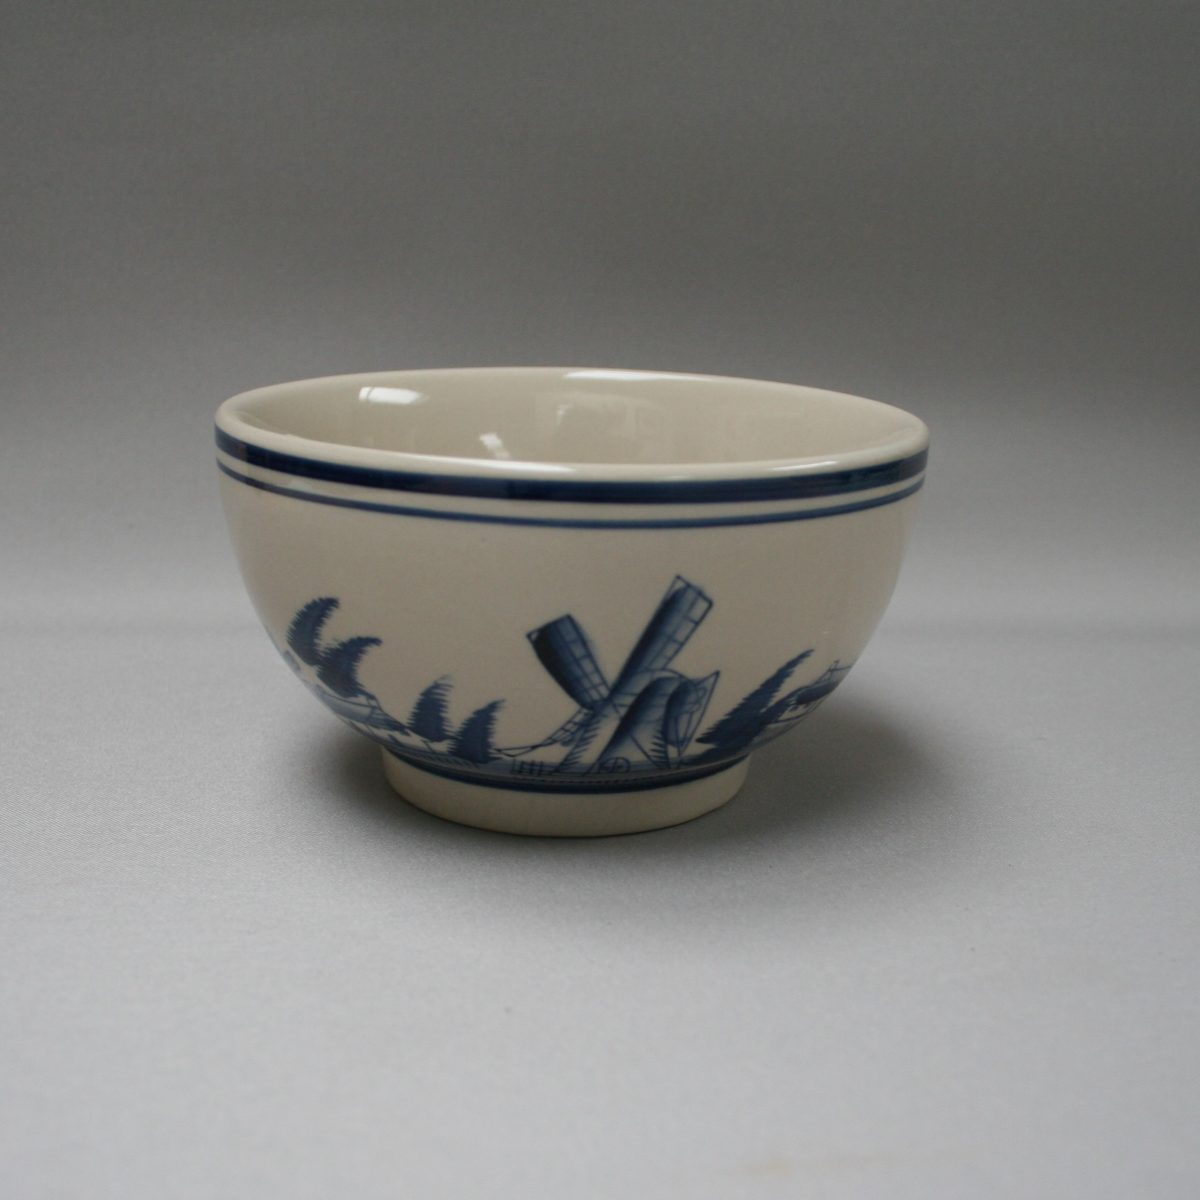 pottery bowl with cream and blue colouring